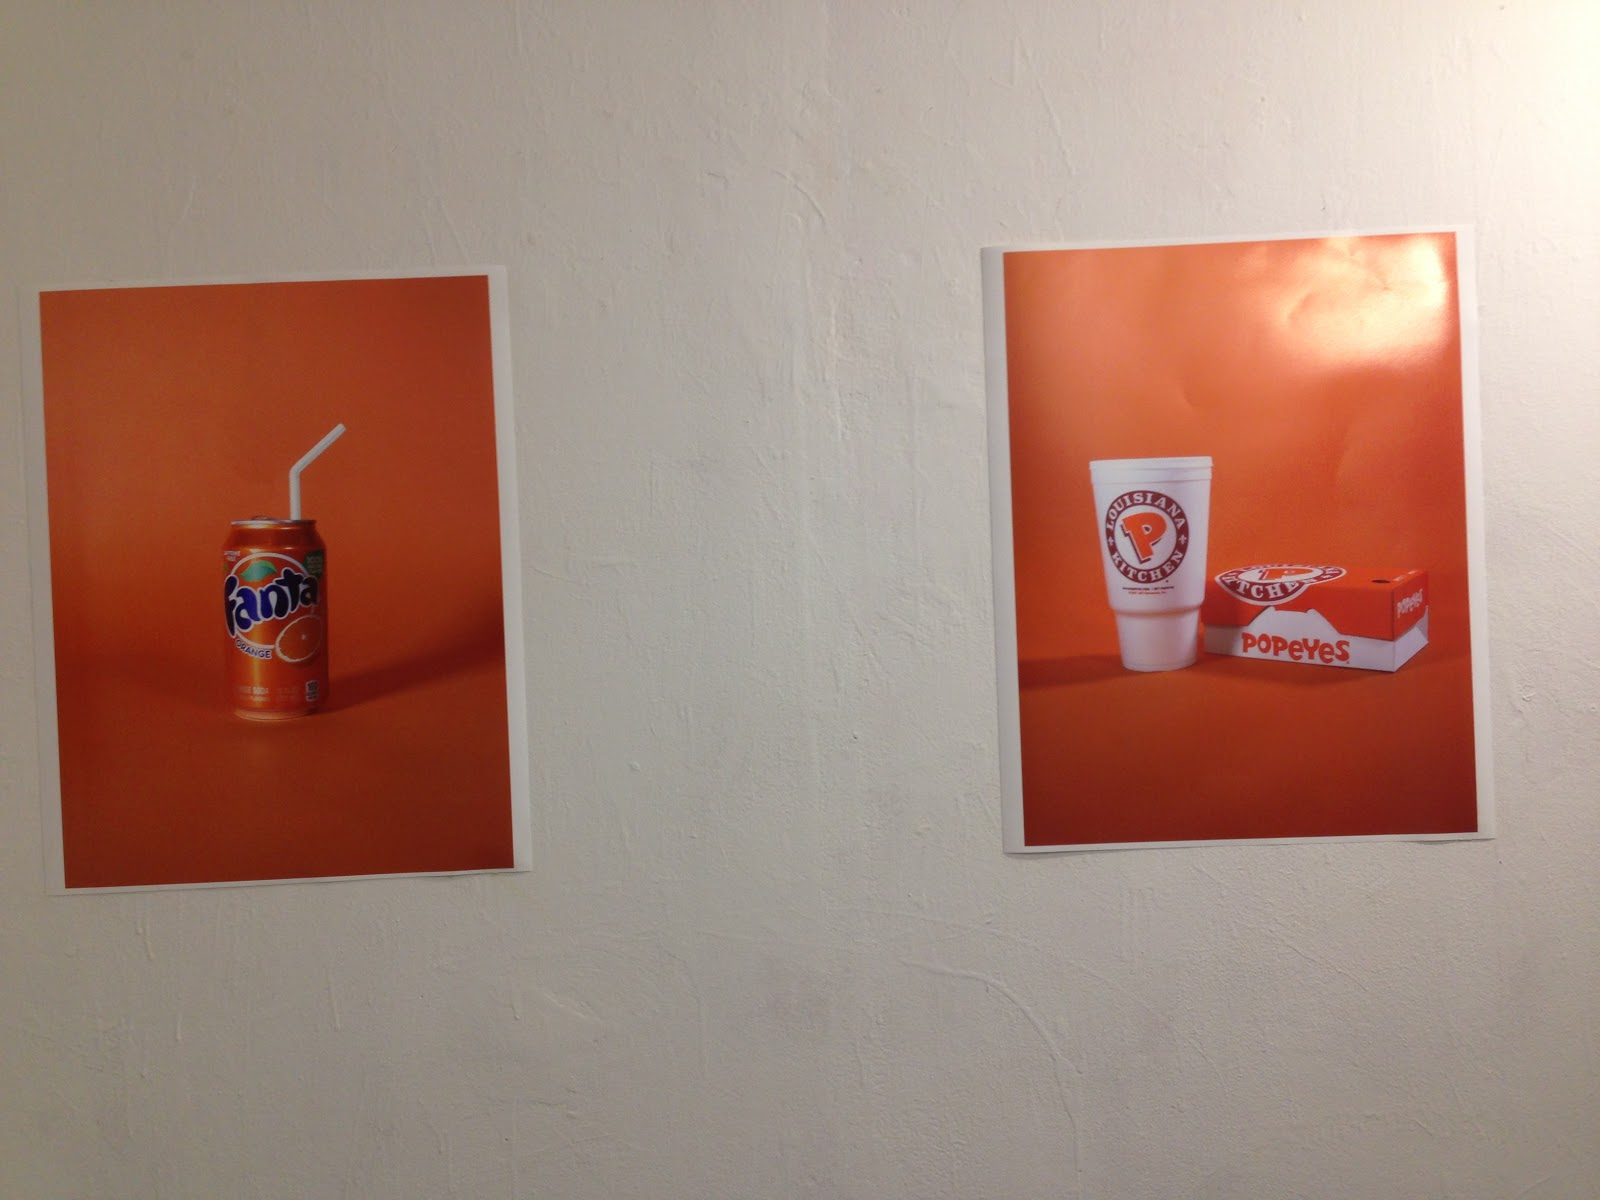 Two photos on wall. Left photo is of an orange Fanta can with a straw. Right picture is a Popeye's chicken meal box and drink.